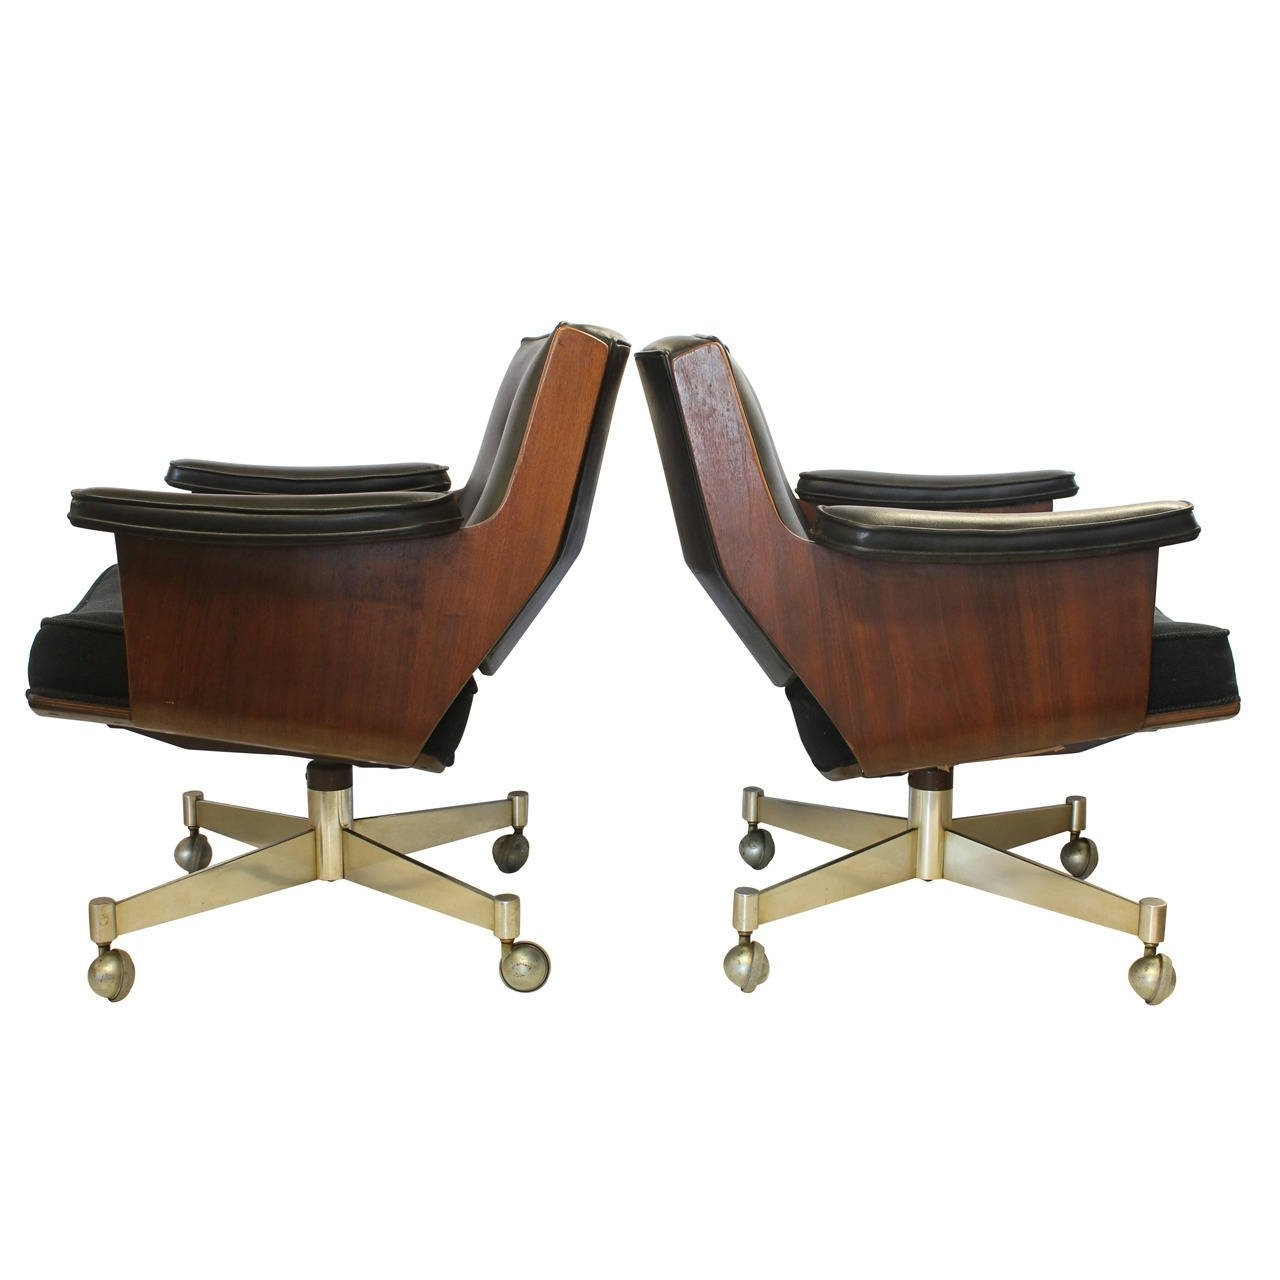 Madison Executive Office Chairs For Latest Executive Swivel Desk Chairsthonet For Sale At 1Stdibs (View 6 of 20)